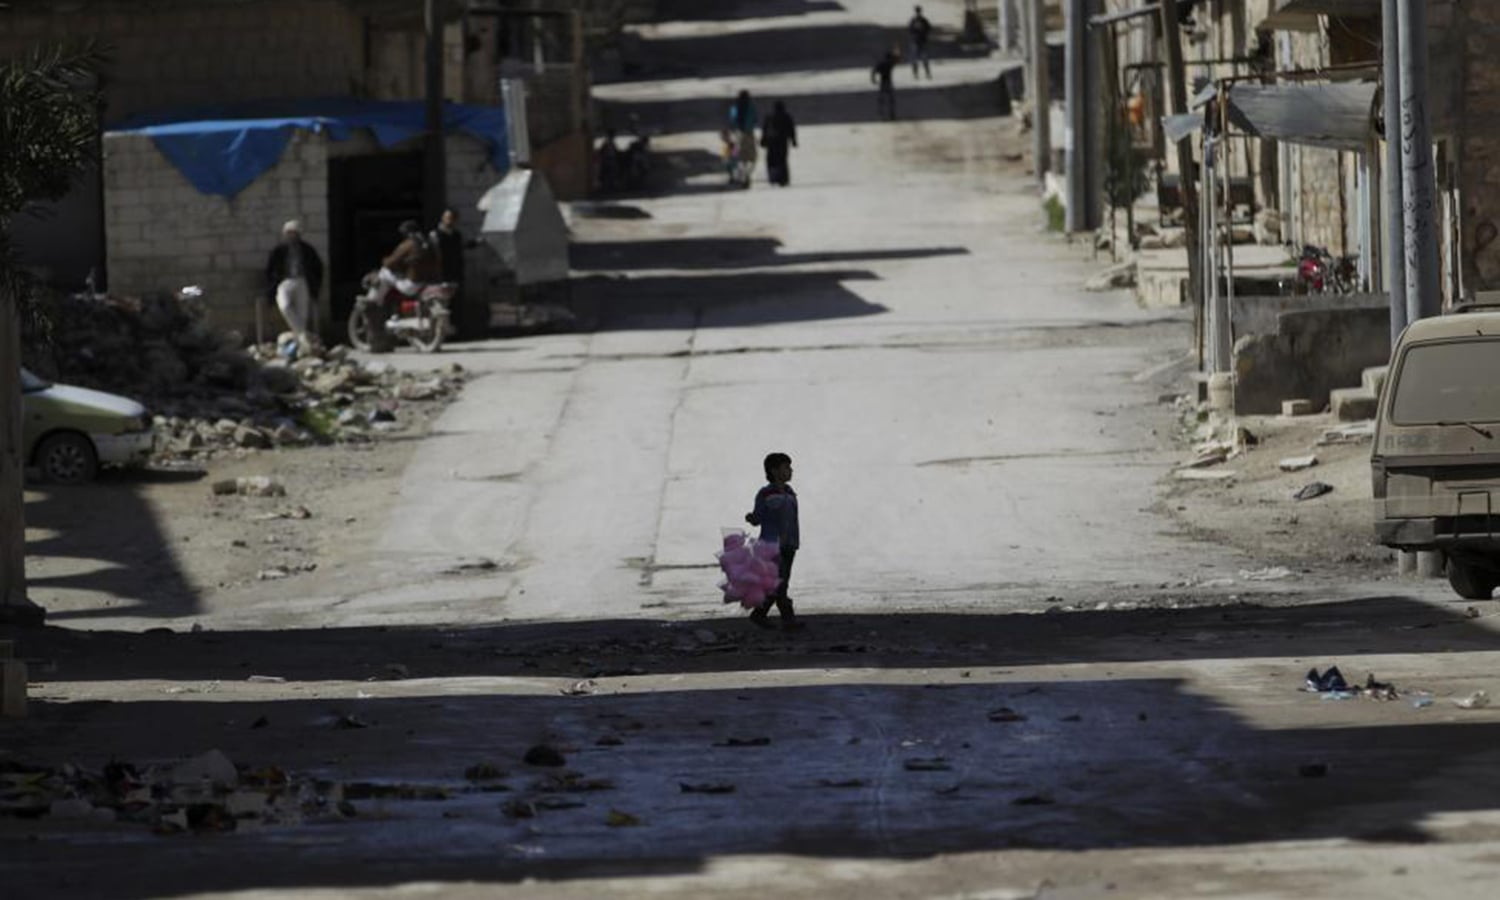 A boy carries bags of cotton candy for sale as he stands along a street in Maaret al-Naaman town in Idlib province. — Reuters